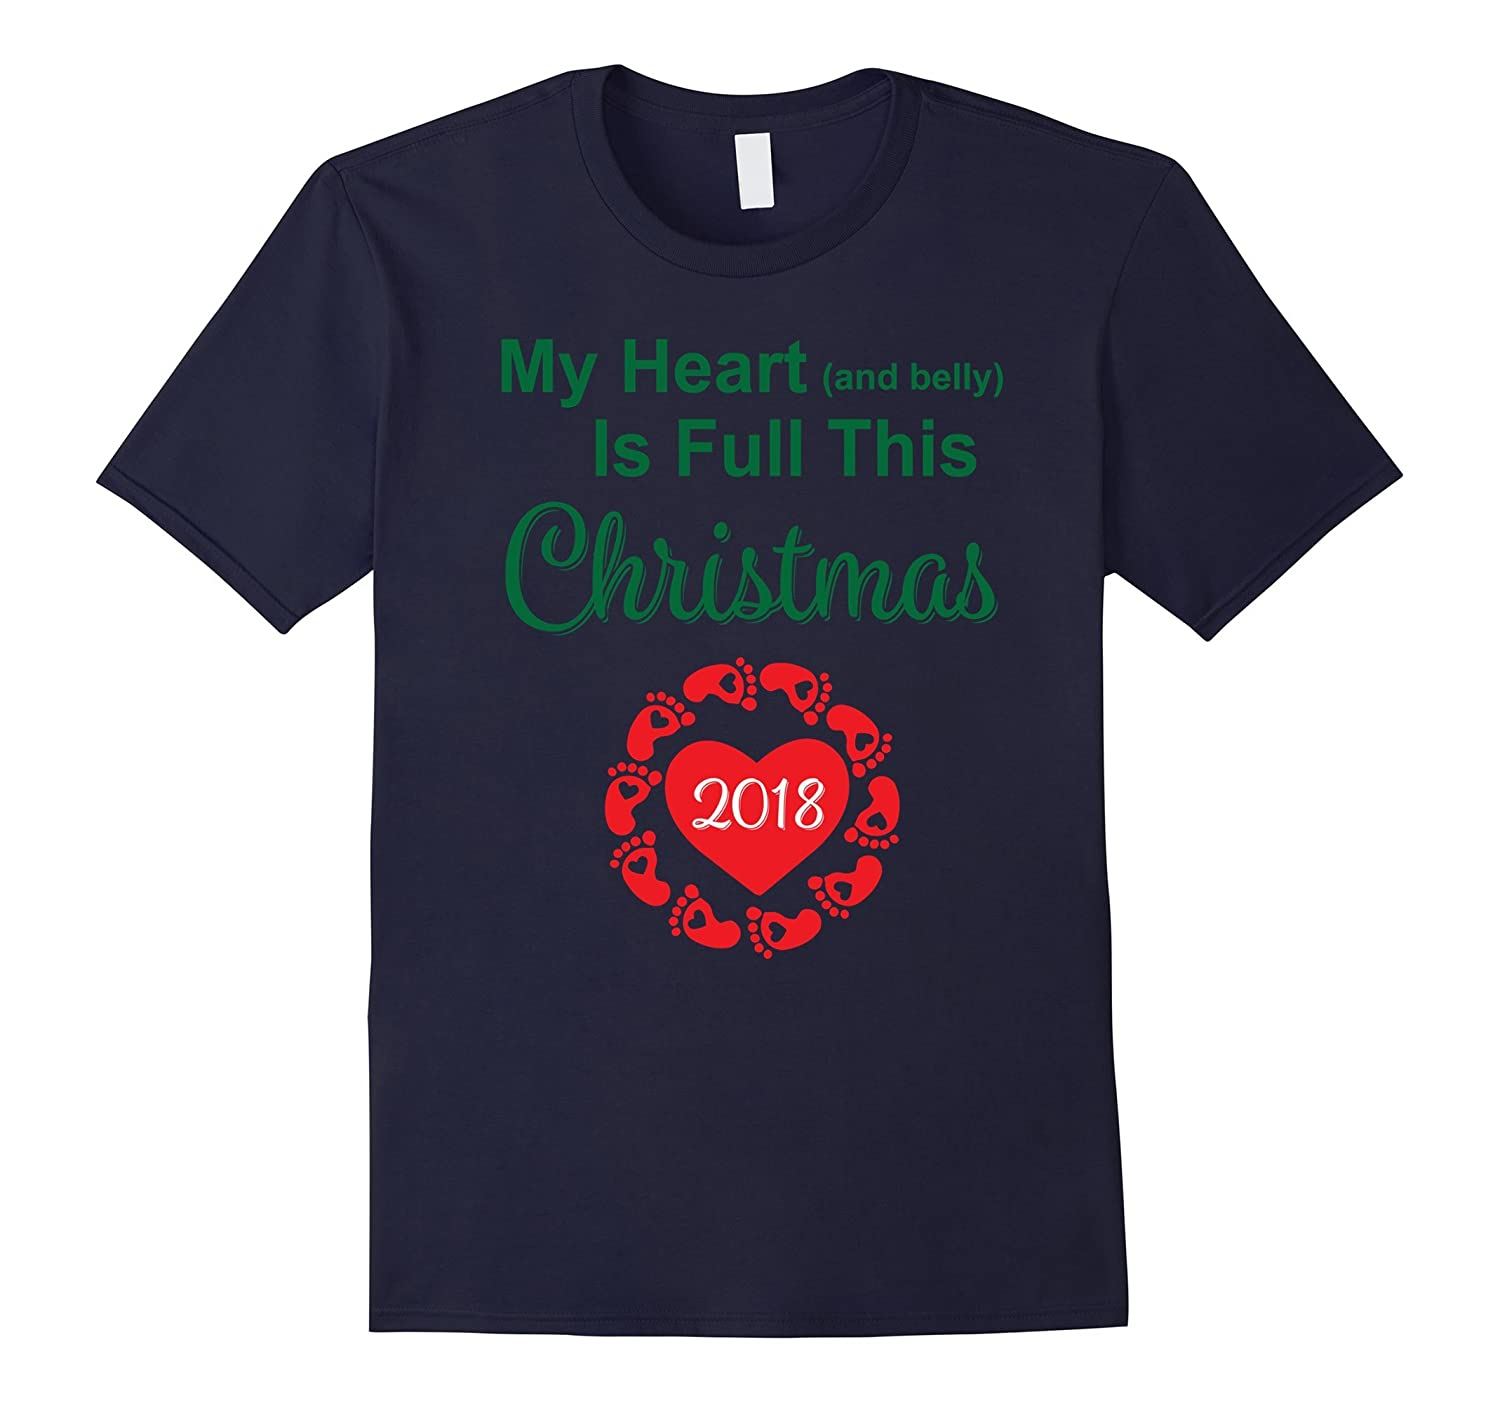 2018 Christmas Pregnancy Announcement Shirt For Mom Baby-ANZ